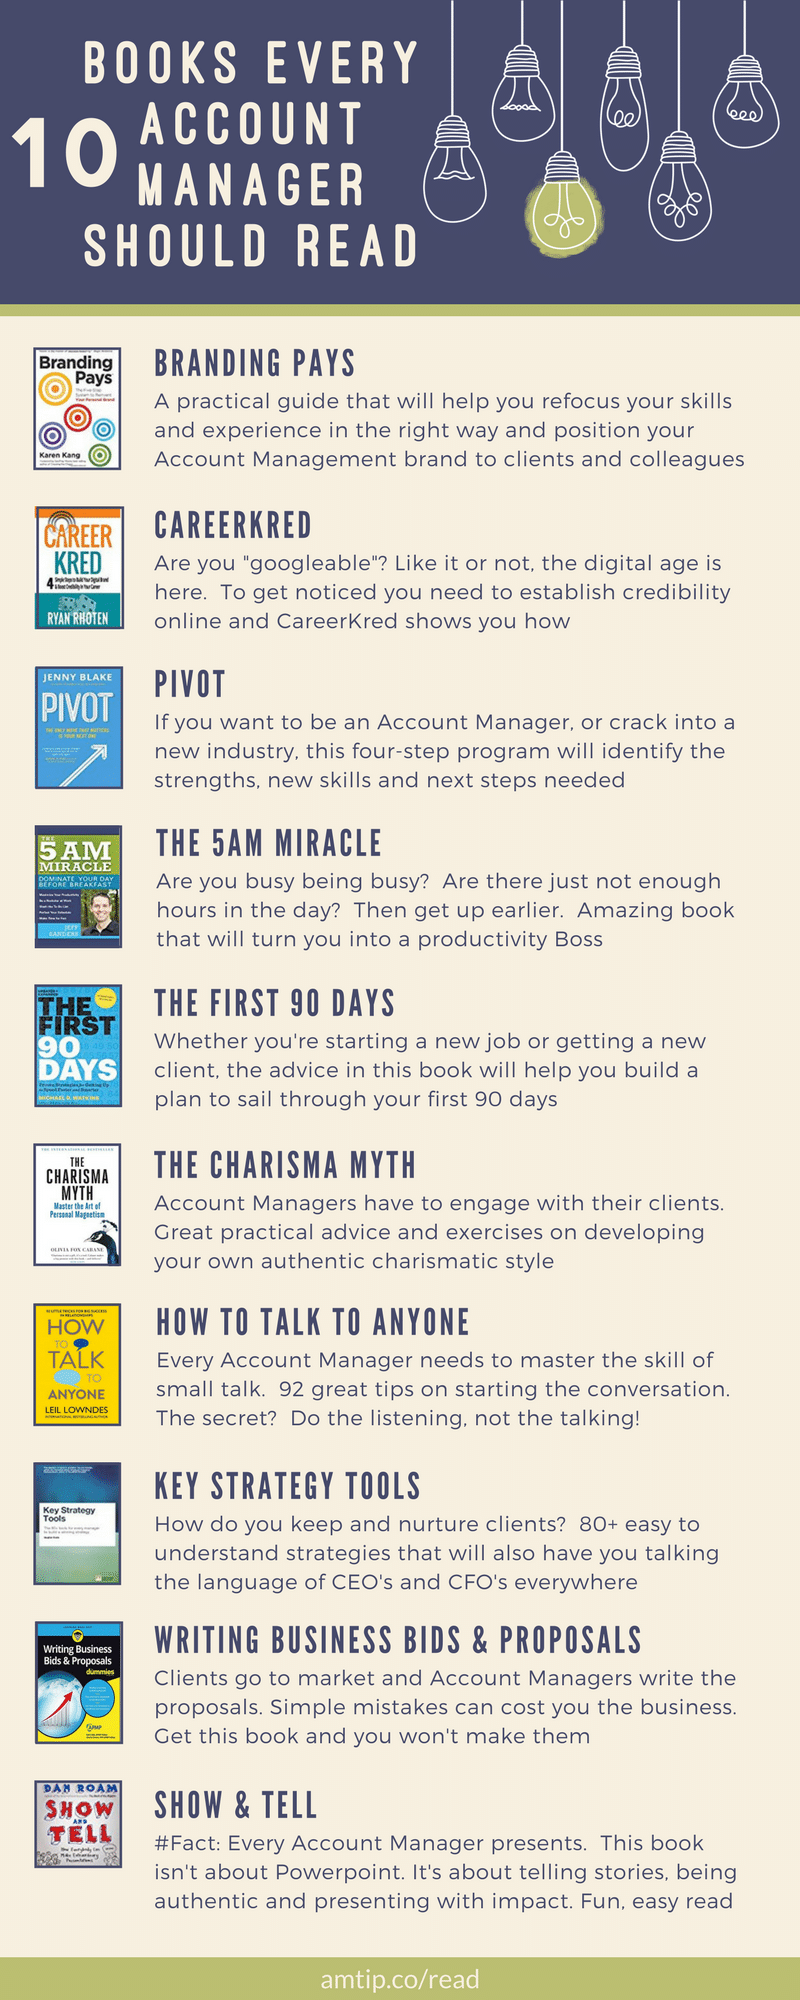 10 best books every account manager should read  infographic